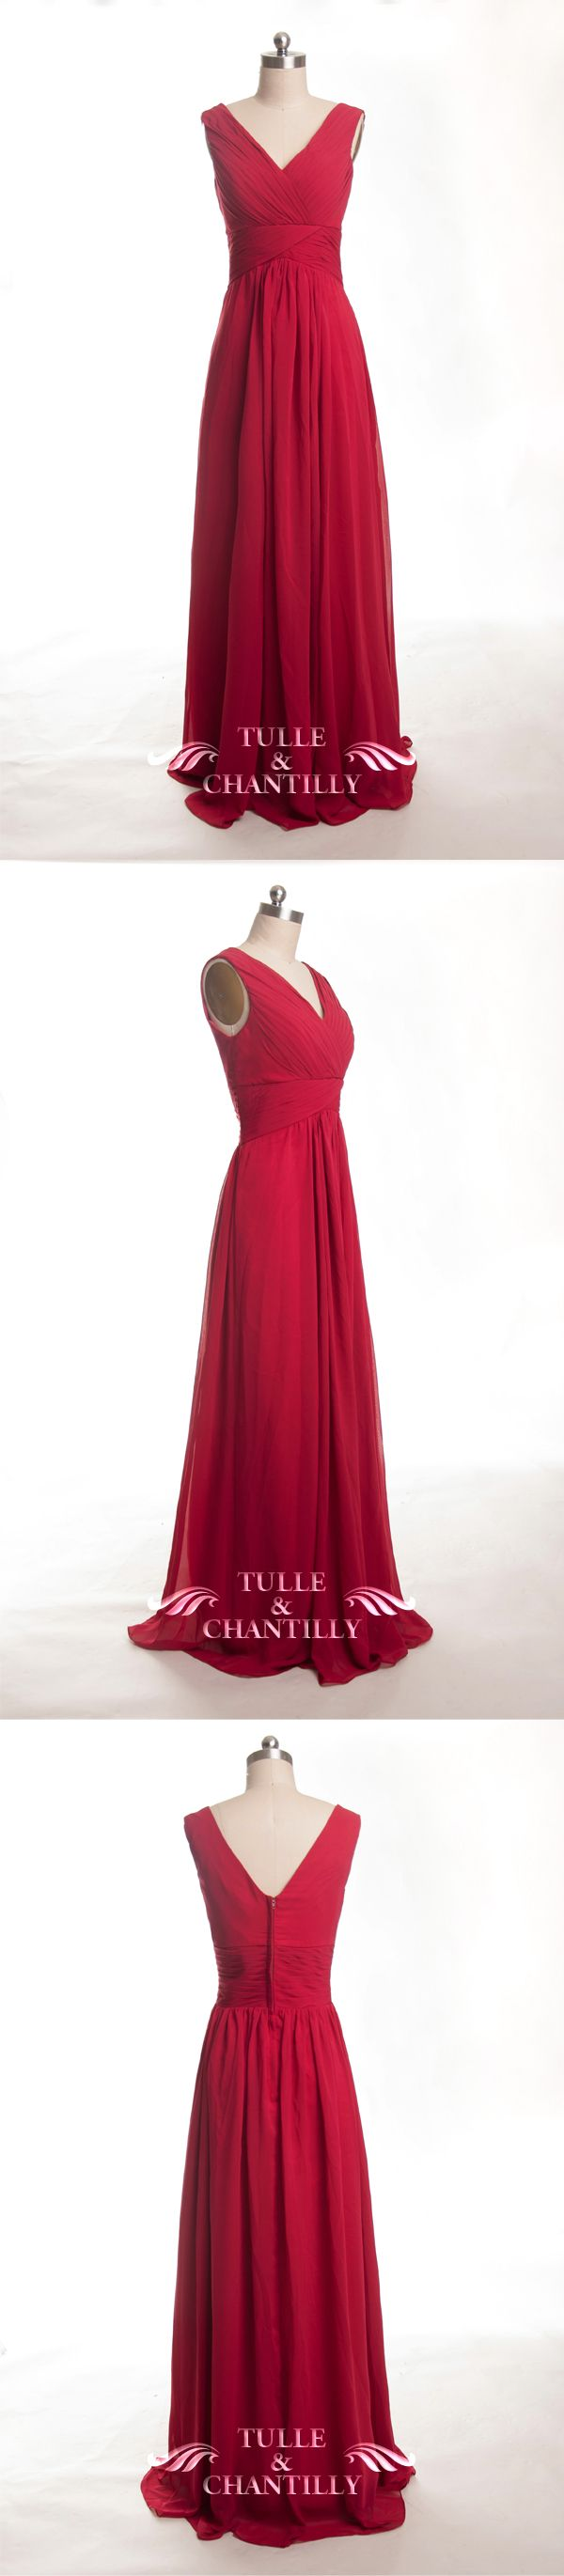 ruby red chiffon bridesmaid dresses with v neck